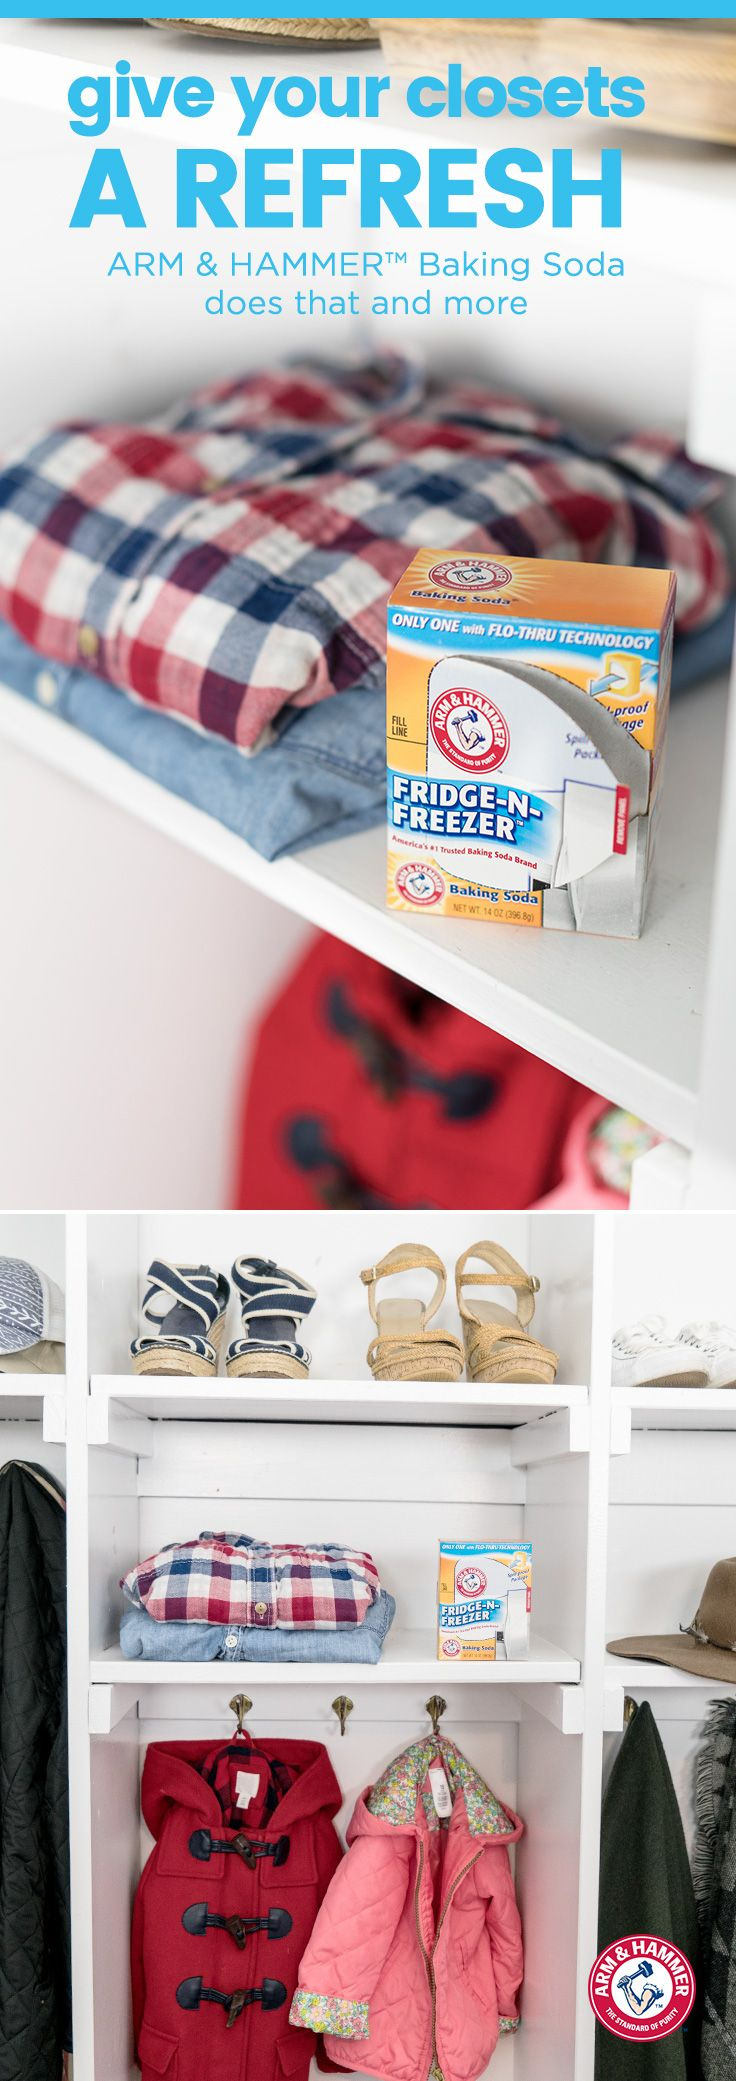 """What's """"in"""" this season?  We say fresh closets!  Just place a box of ARM & HAMMER™  Fridge-n-Freezer™ Baking Soda in your closet shelf.  Replace the box every 30 days to keep stale odors out all season long.  After all, freshness is always in style."""